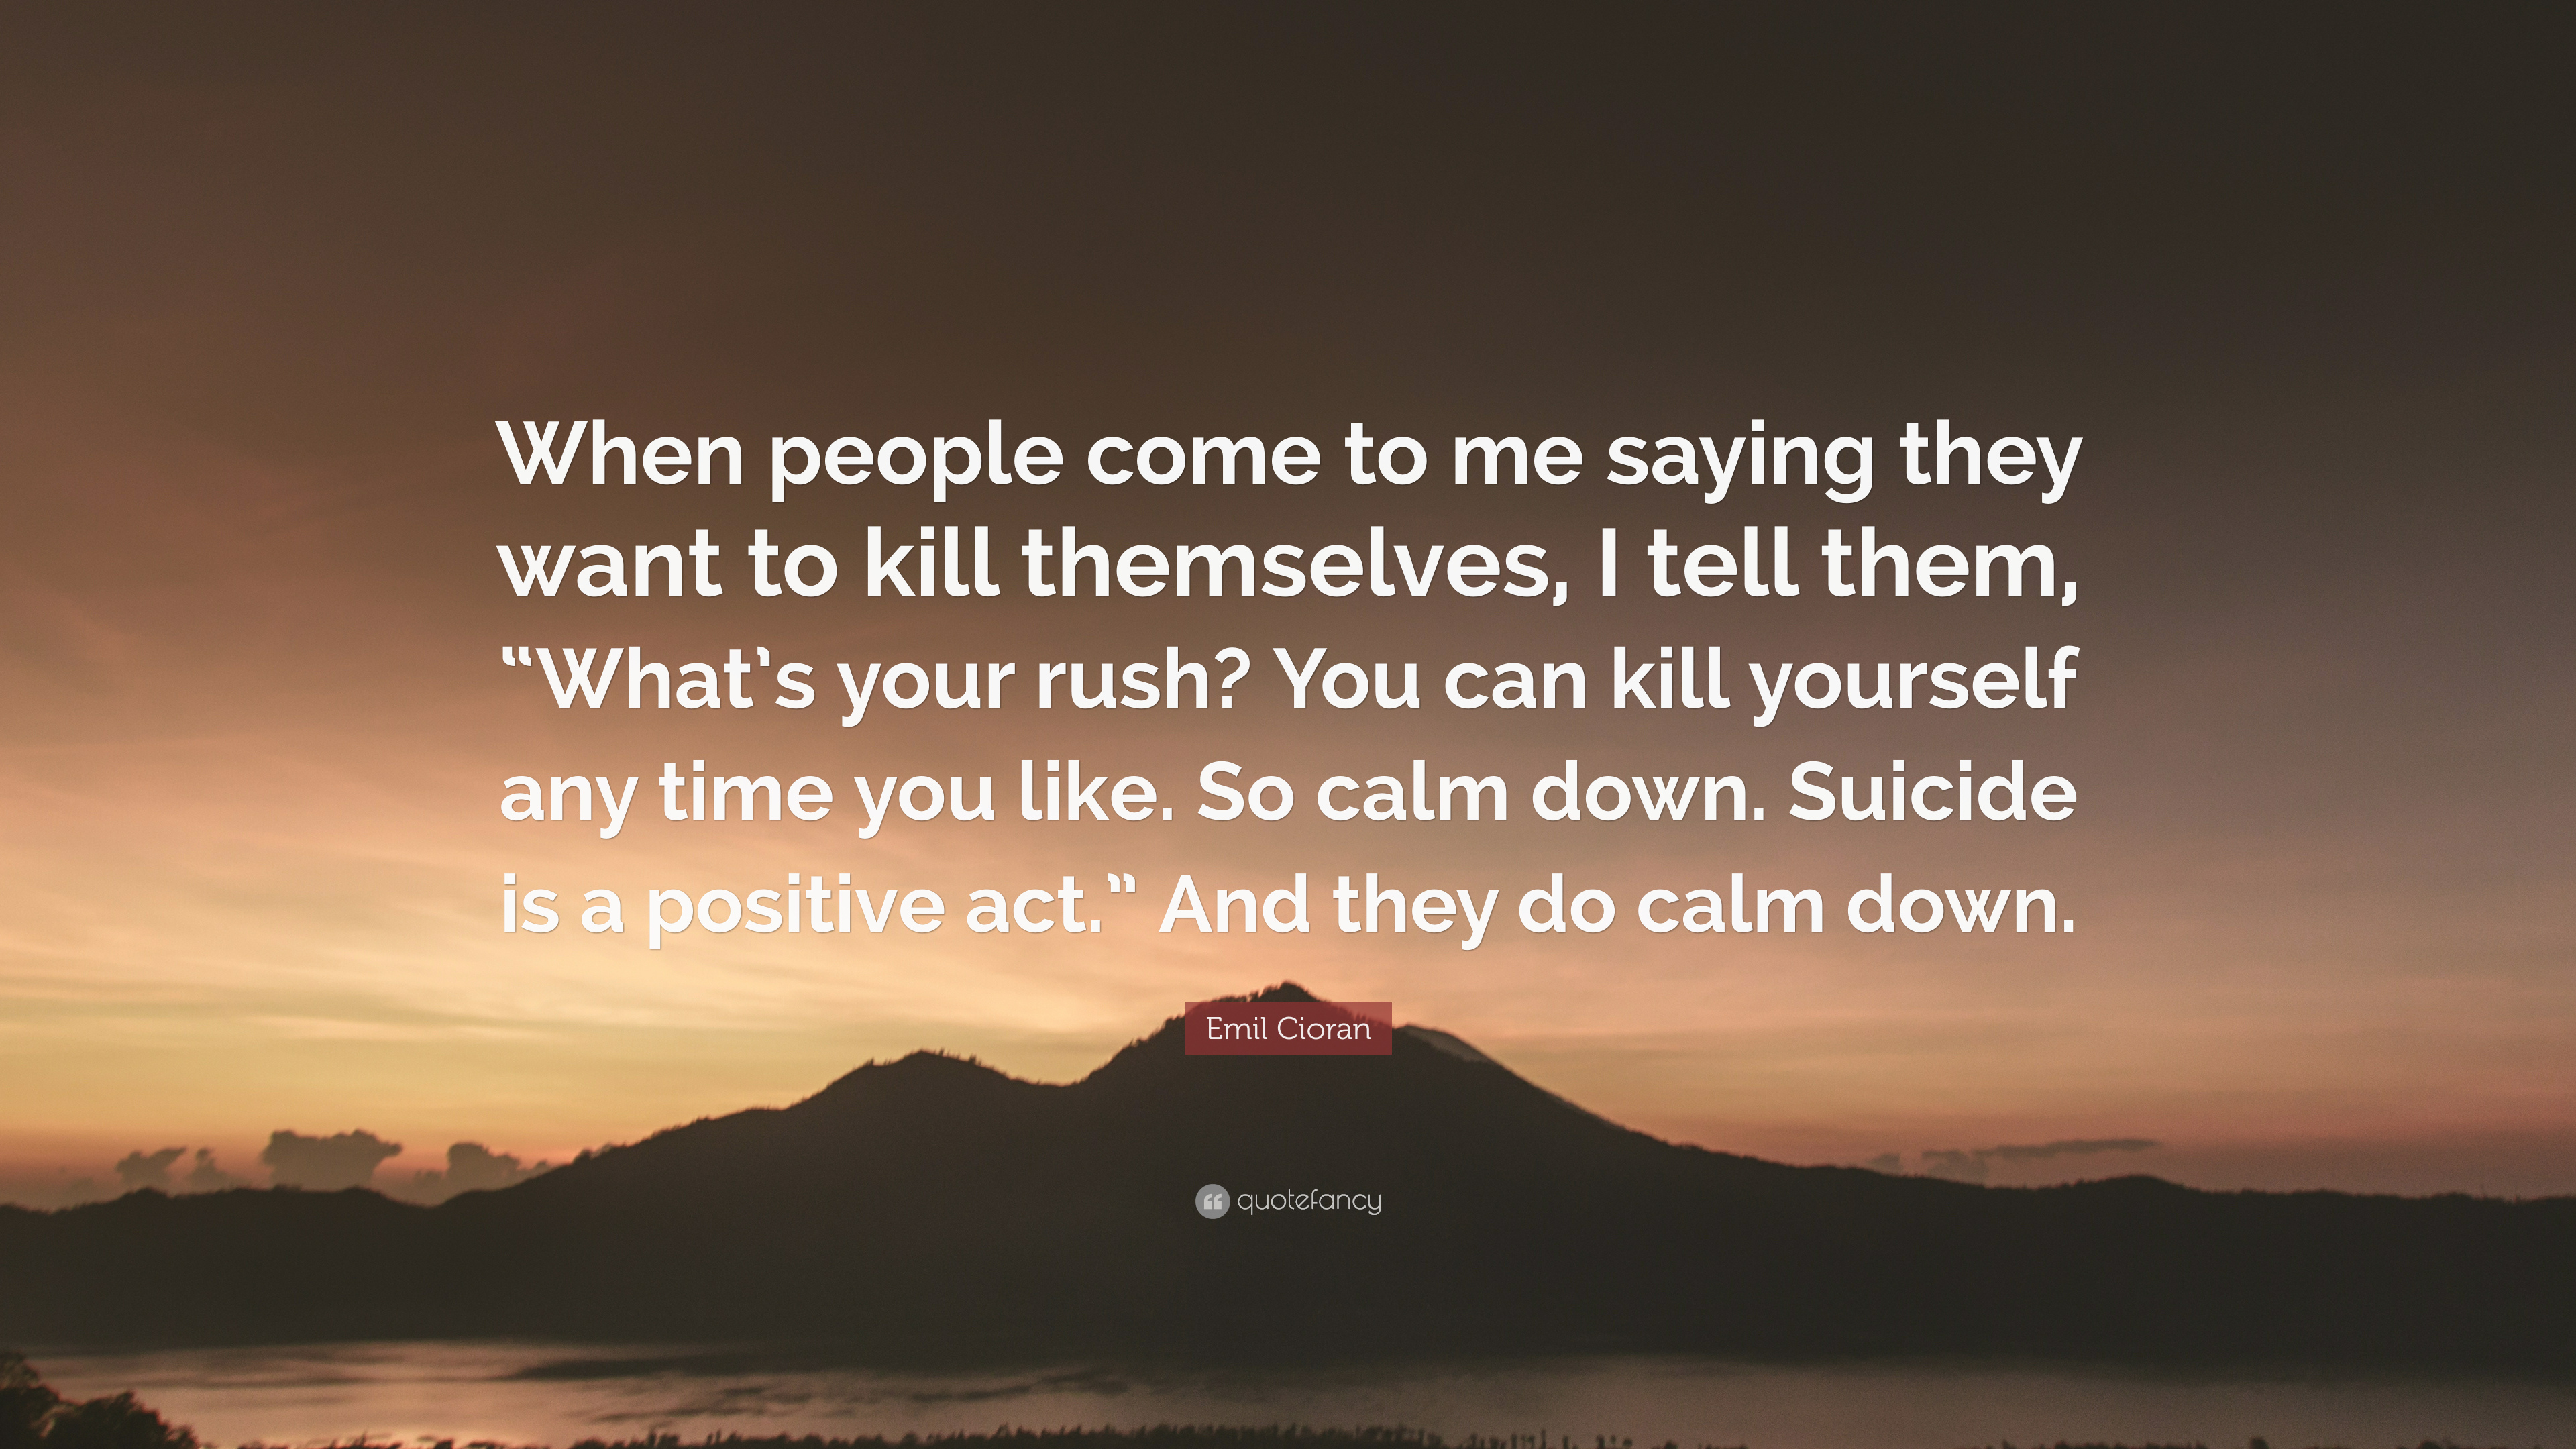 Emil Cioran Quote When People Come To Me Saying They Want To Kill